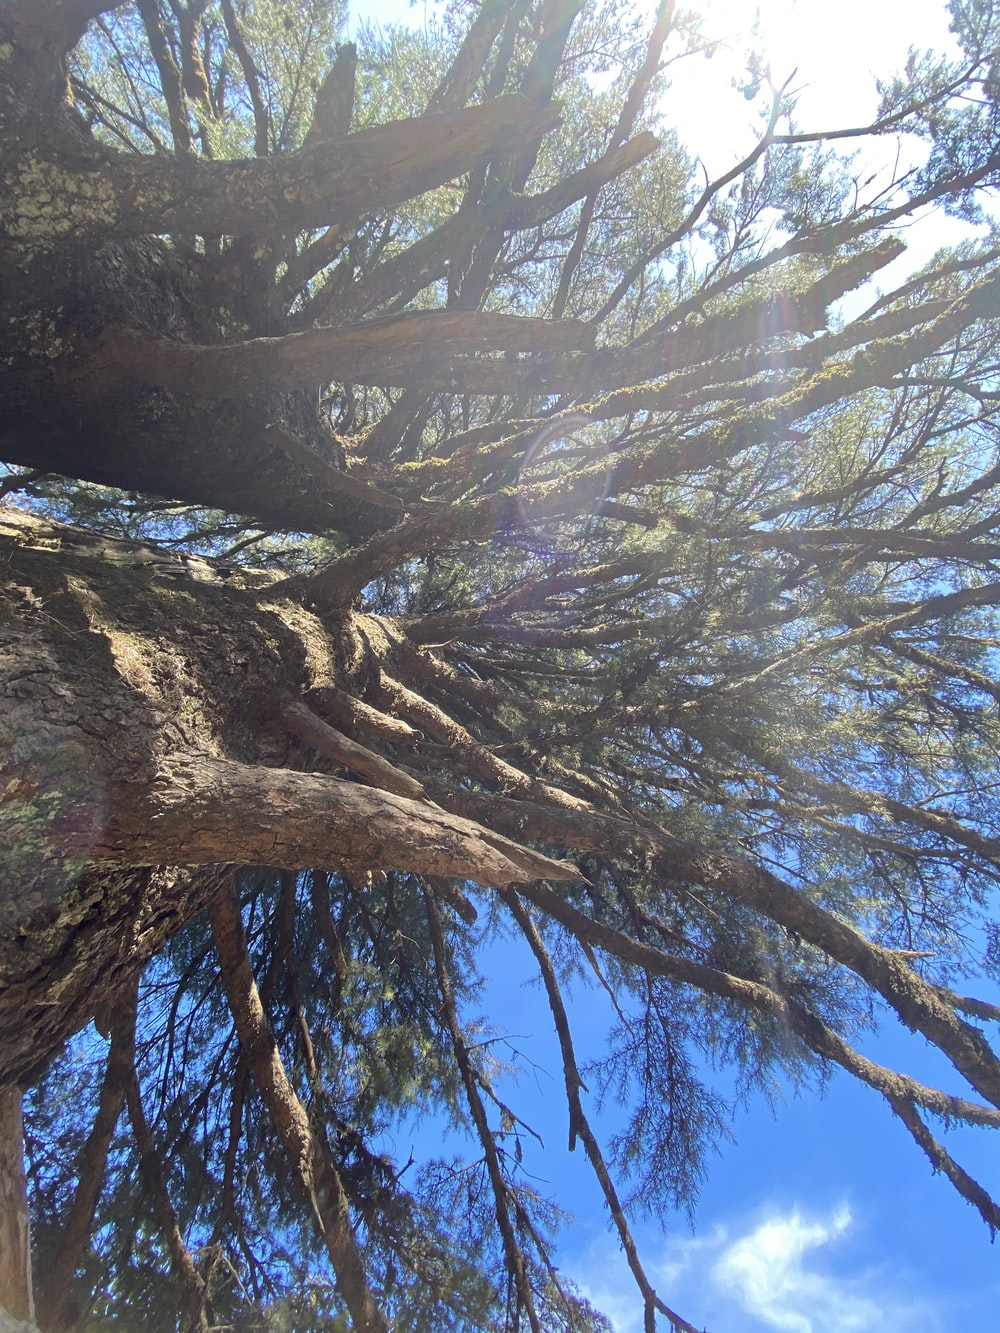 brown tree trunk under blue sky during daytime